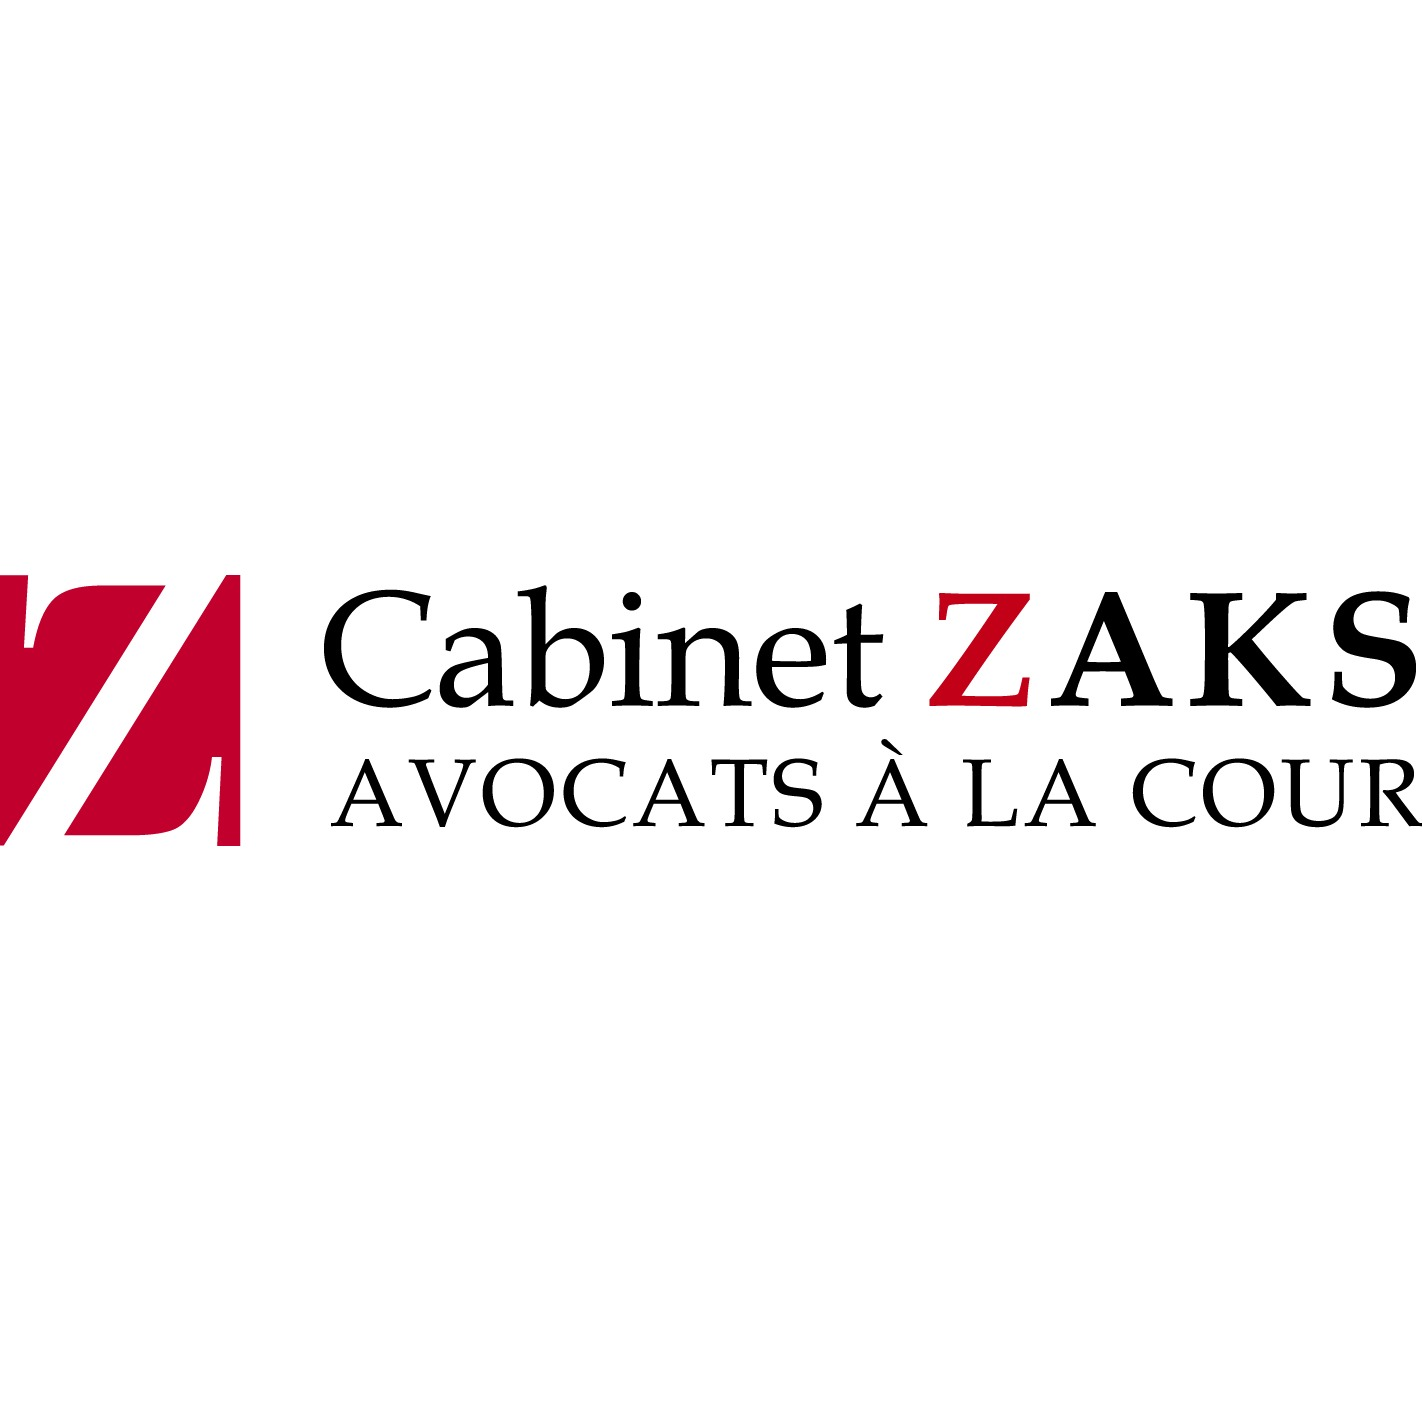 the Cabinet Zaks logo.